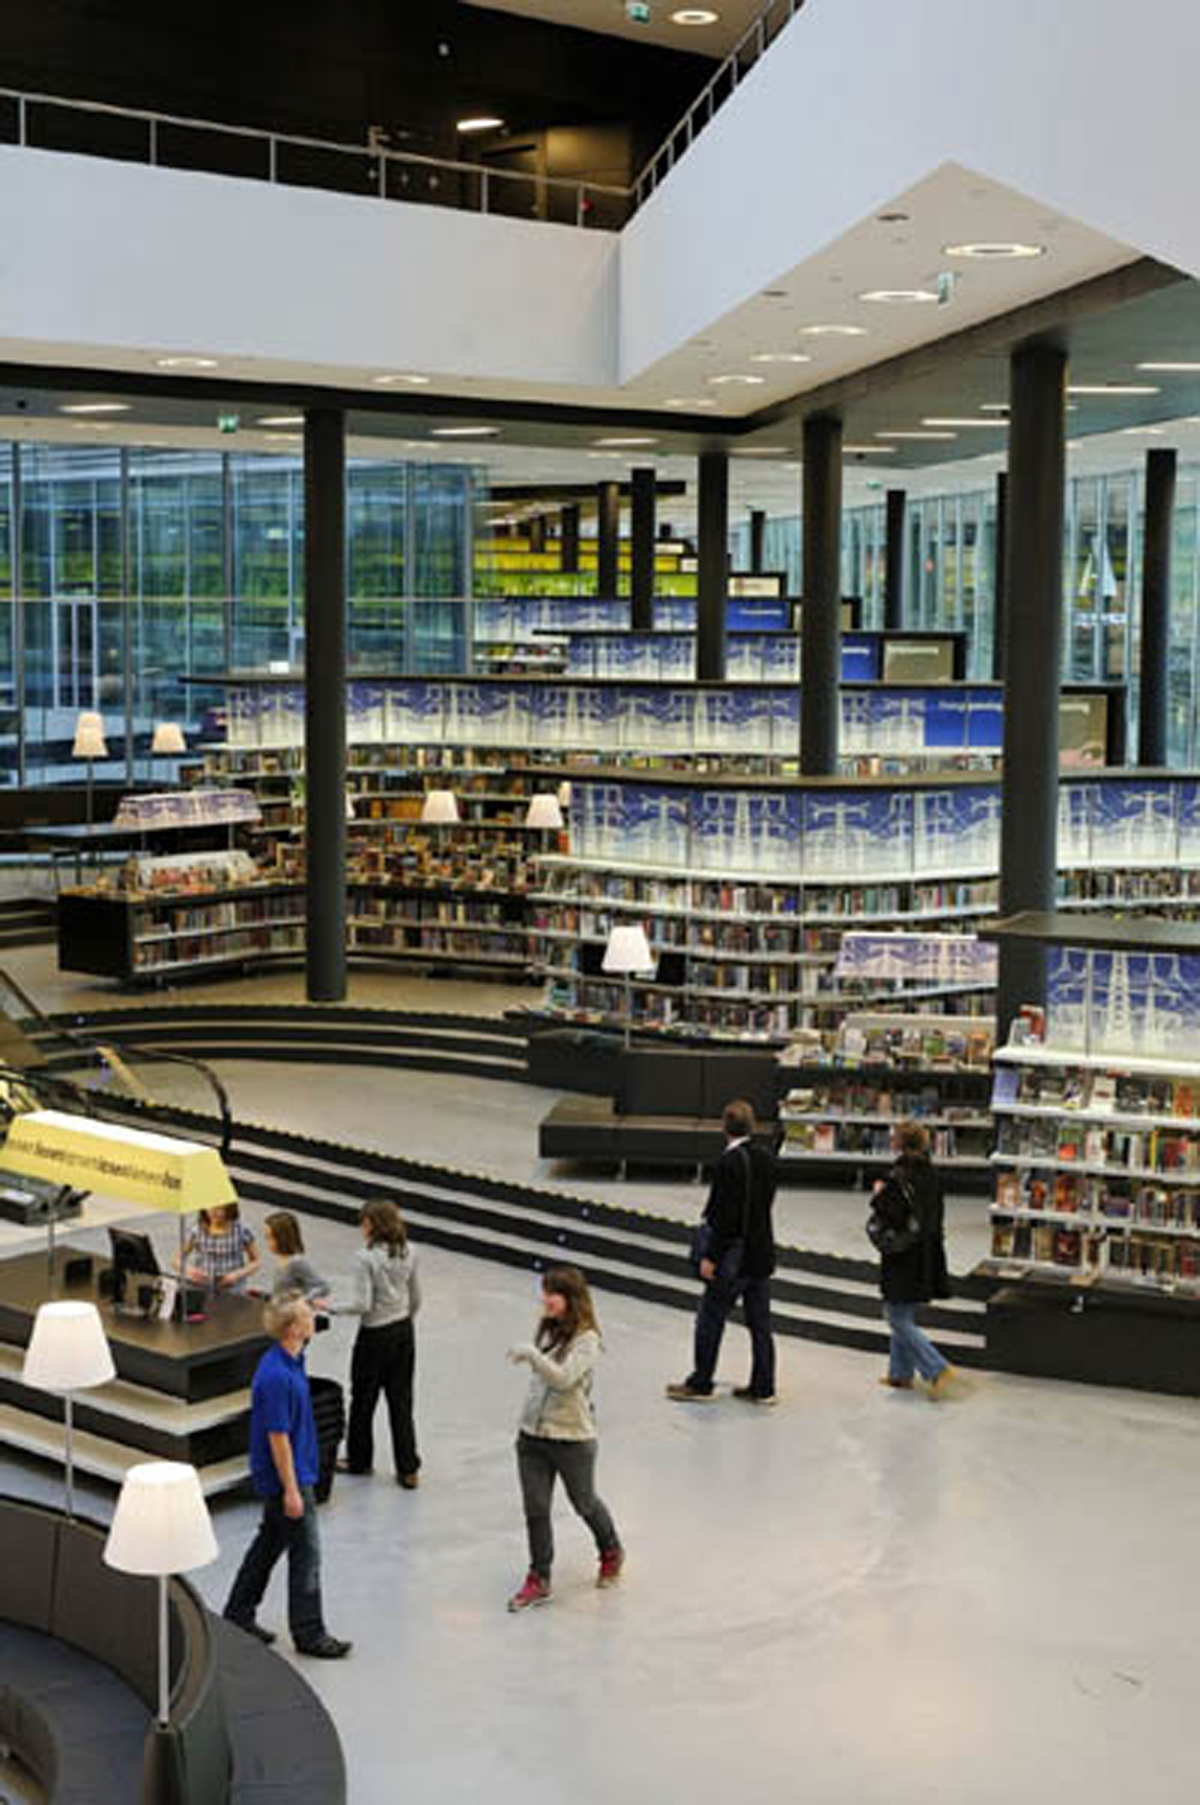 Modern Netherlands Library Designs with Clean and Clear Interior ...